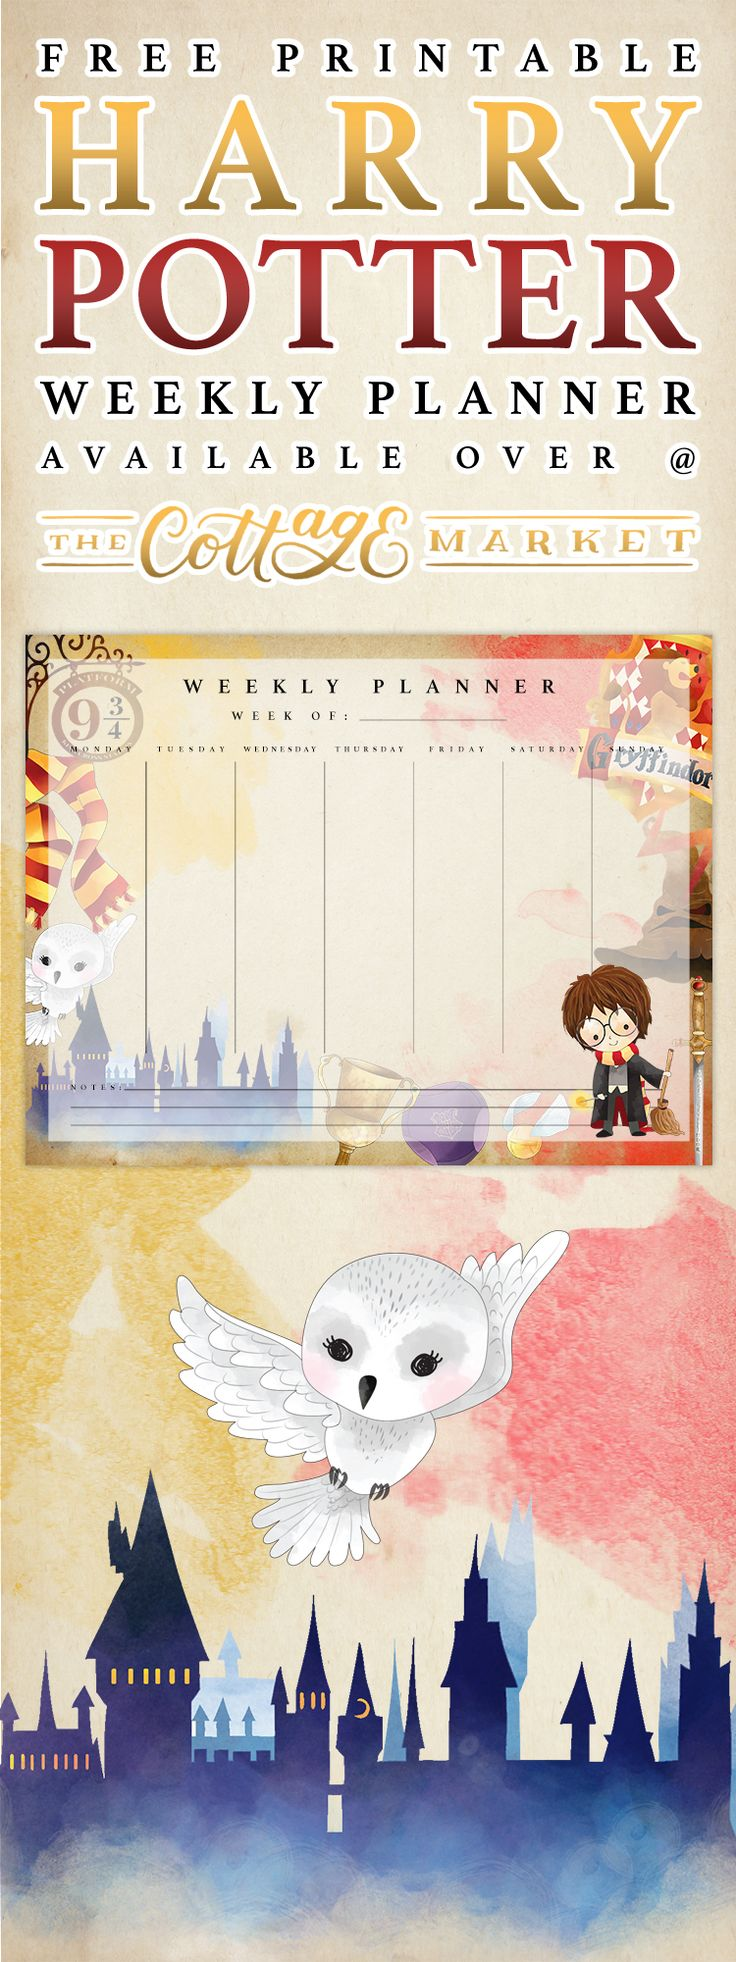 We have a brand new Free Printable Harry Pottery Weekly Planner for you today and I think you will find it magical Perfect for daily notes and Kids Homework